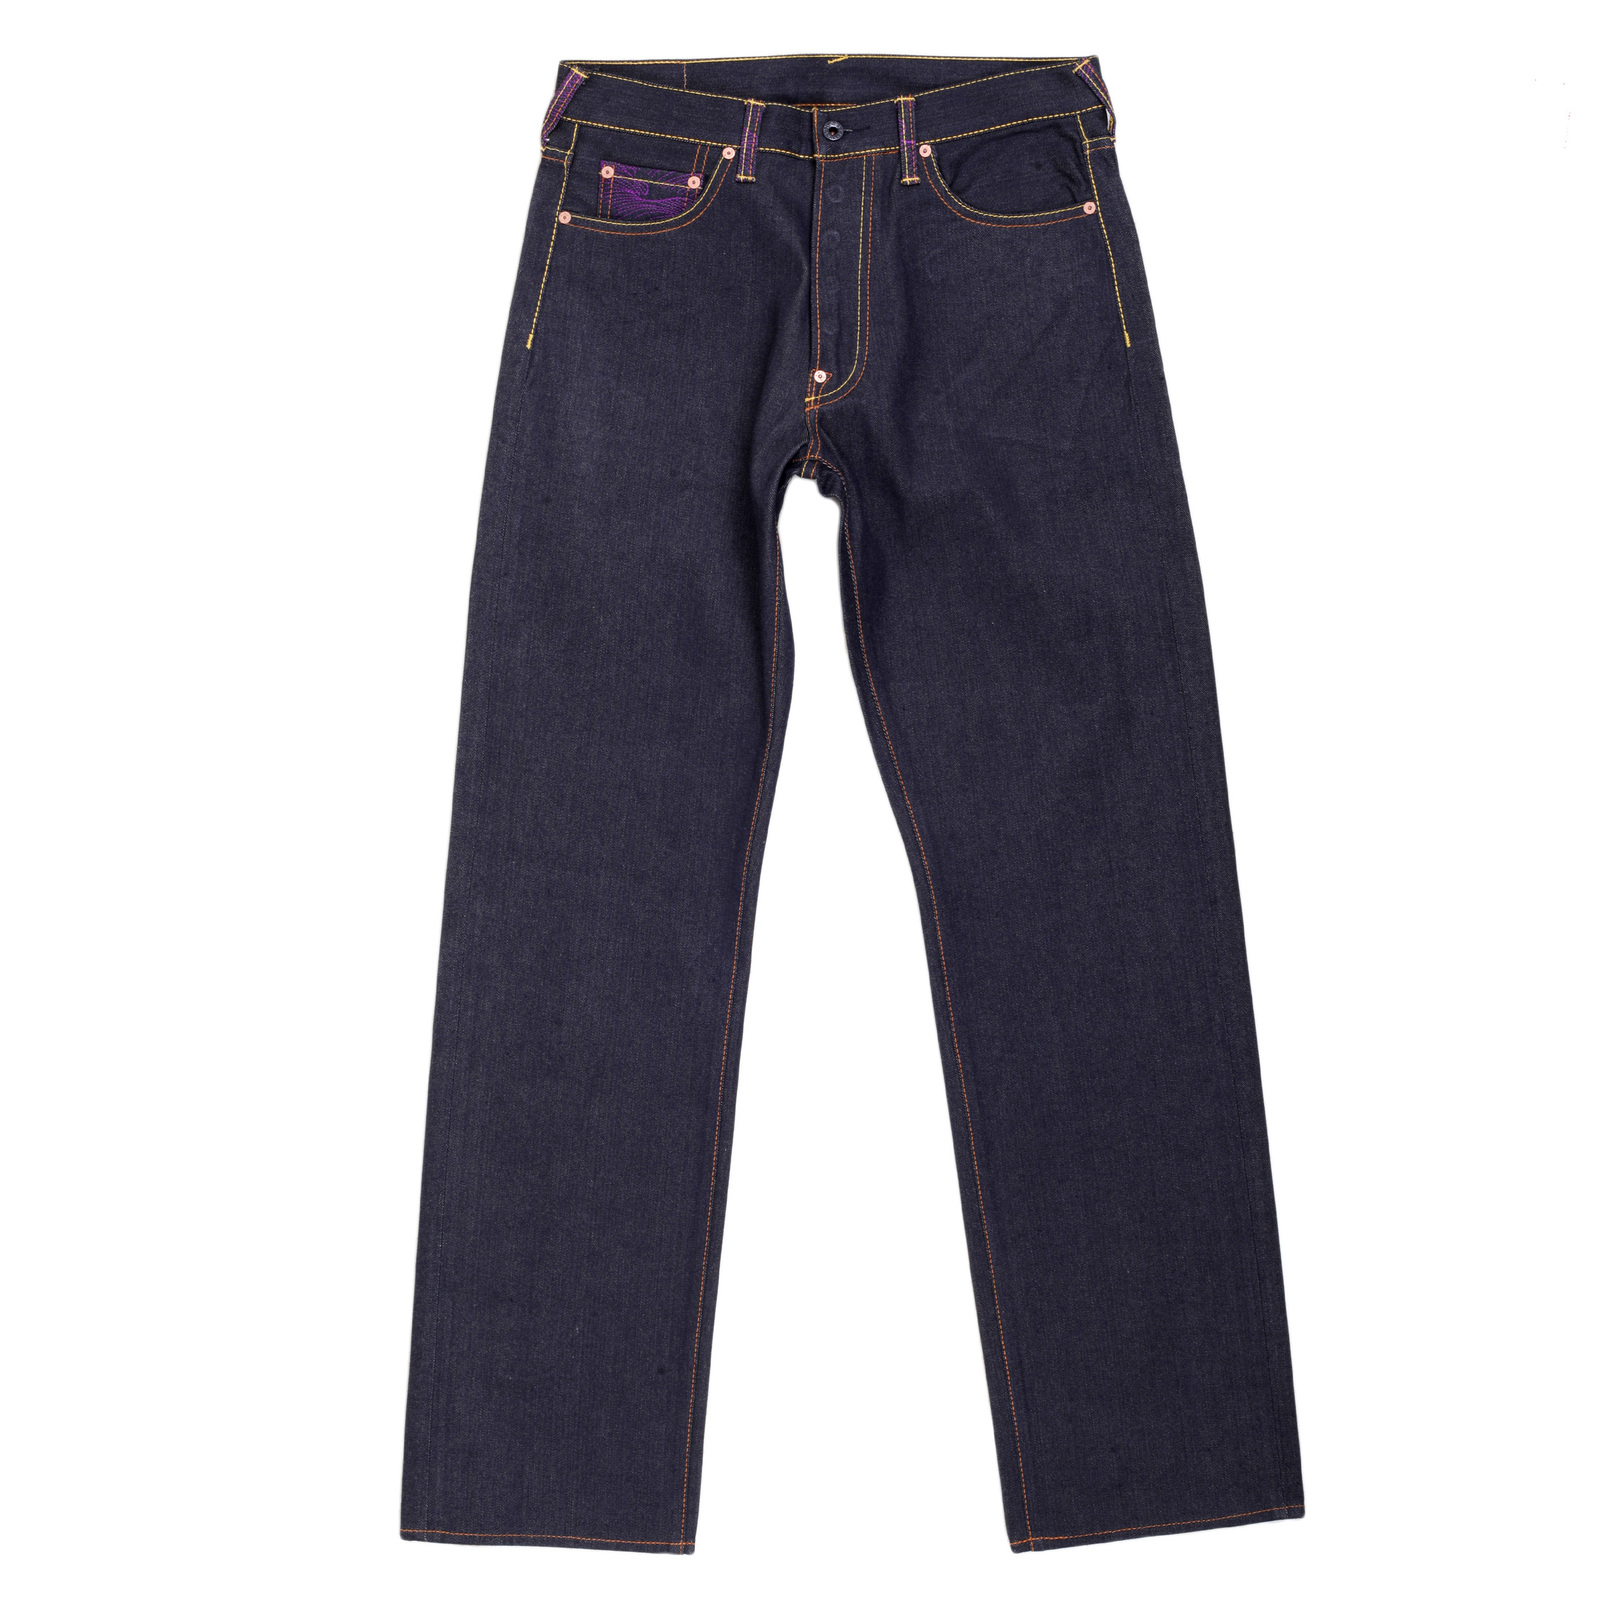 Rocking Raw Selvedge Denim Jeans by Red Monkey Jeans